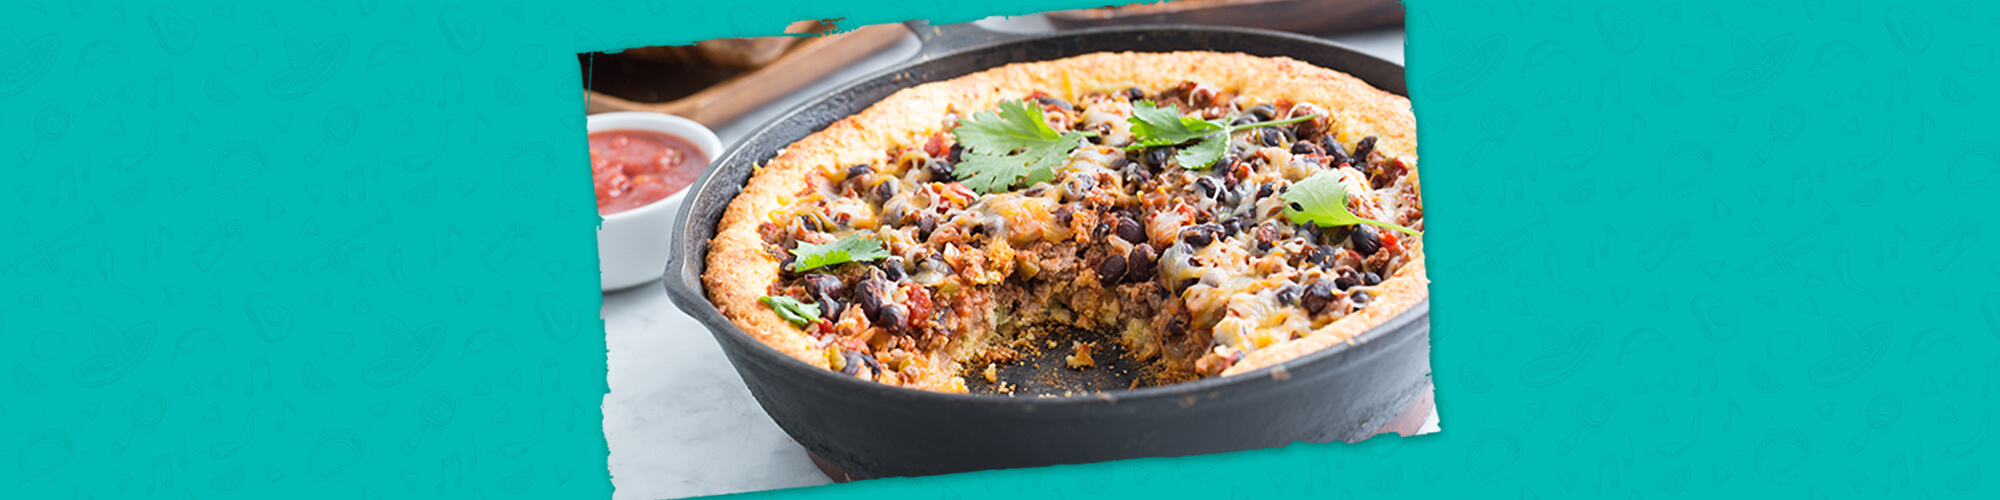 Salsas tamales pie with cheese crust